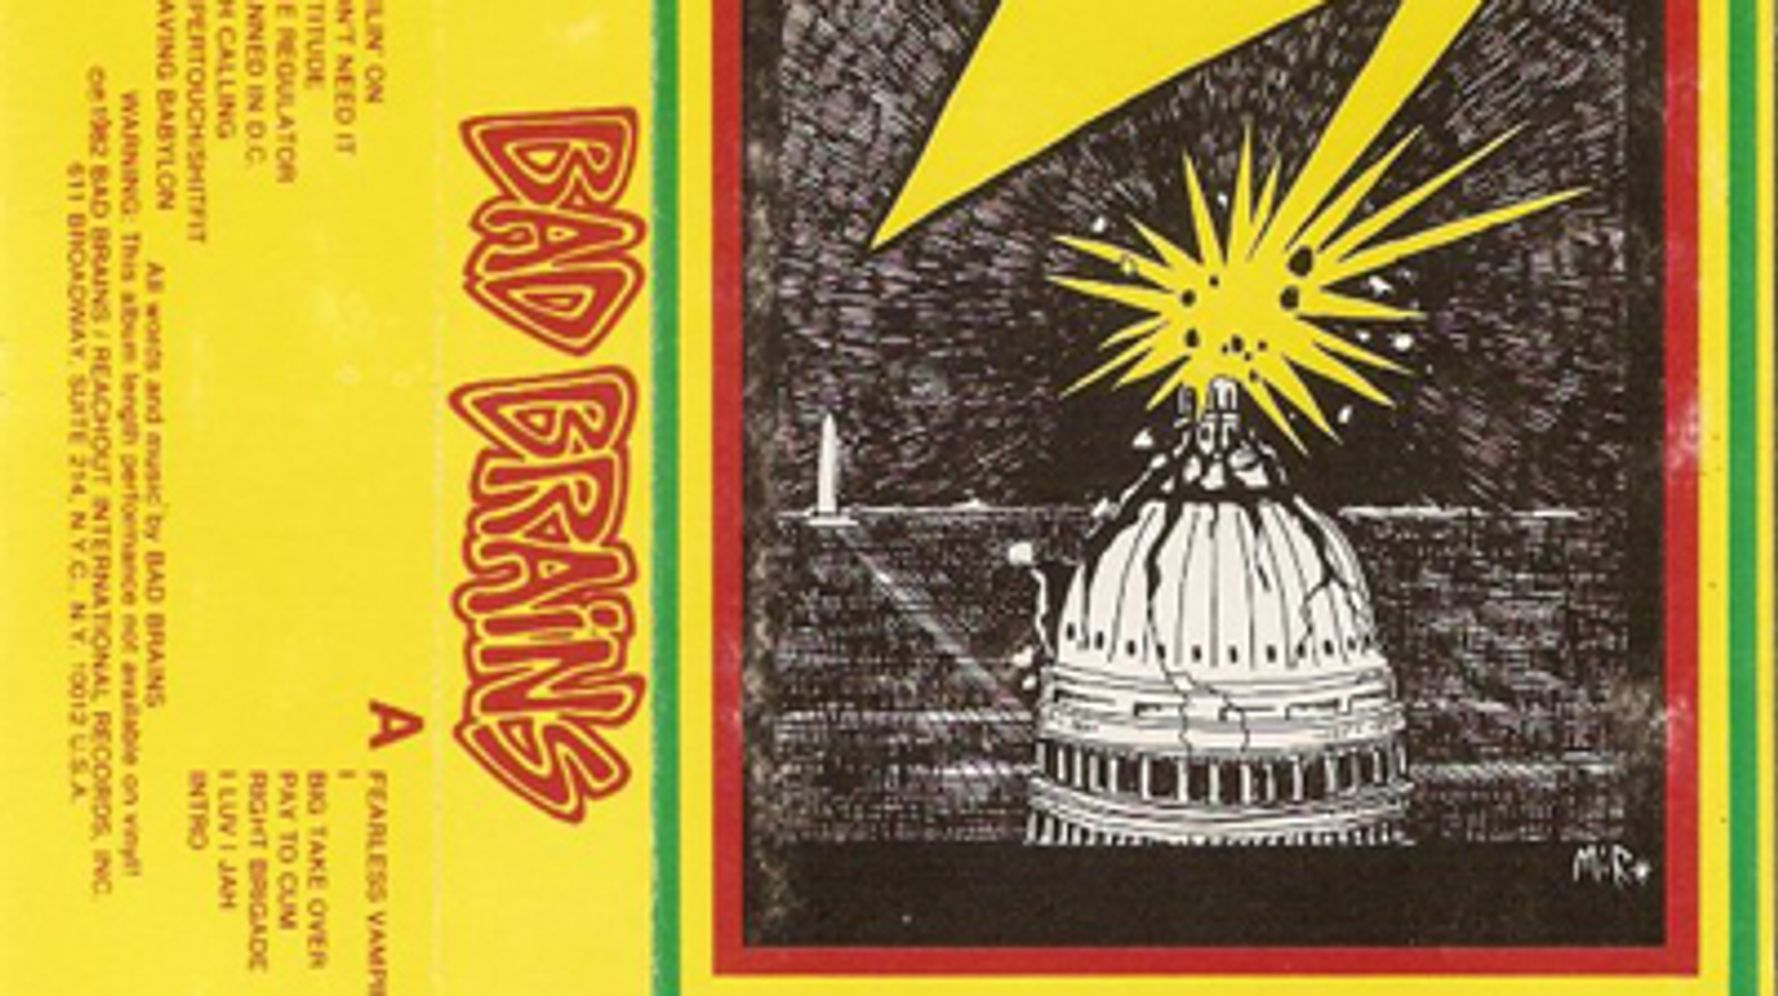 A Conversation with Author Howie Abrams: H R  and Bad Brains